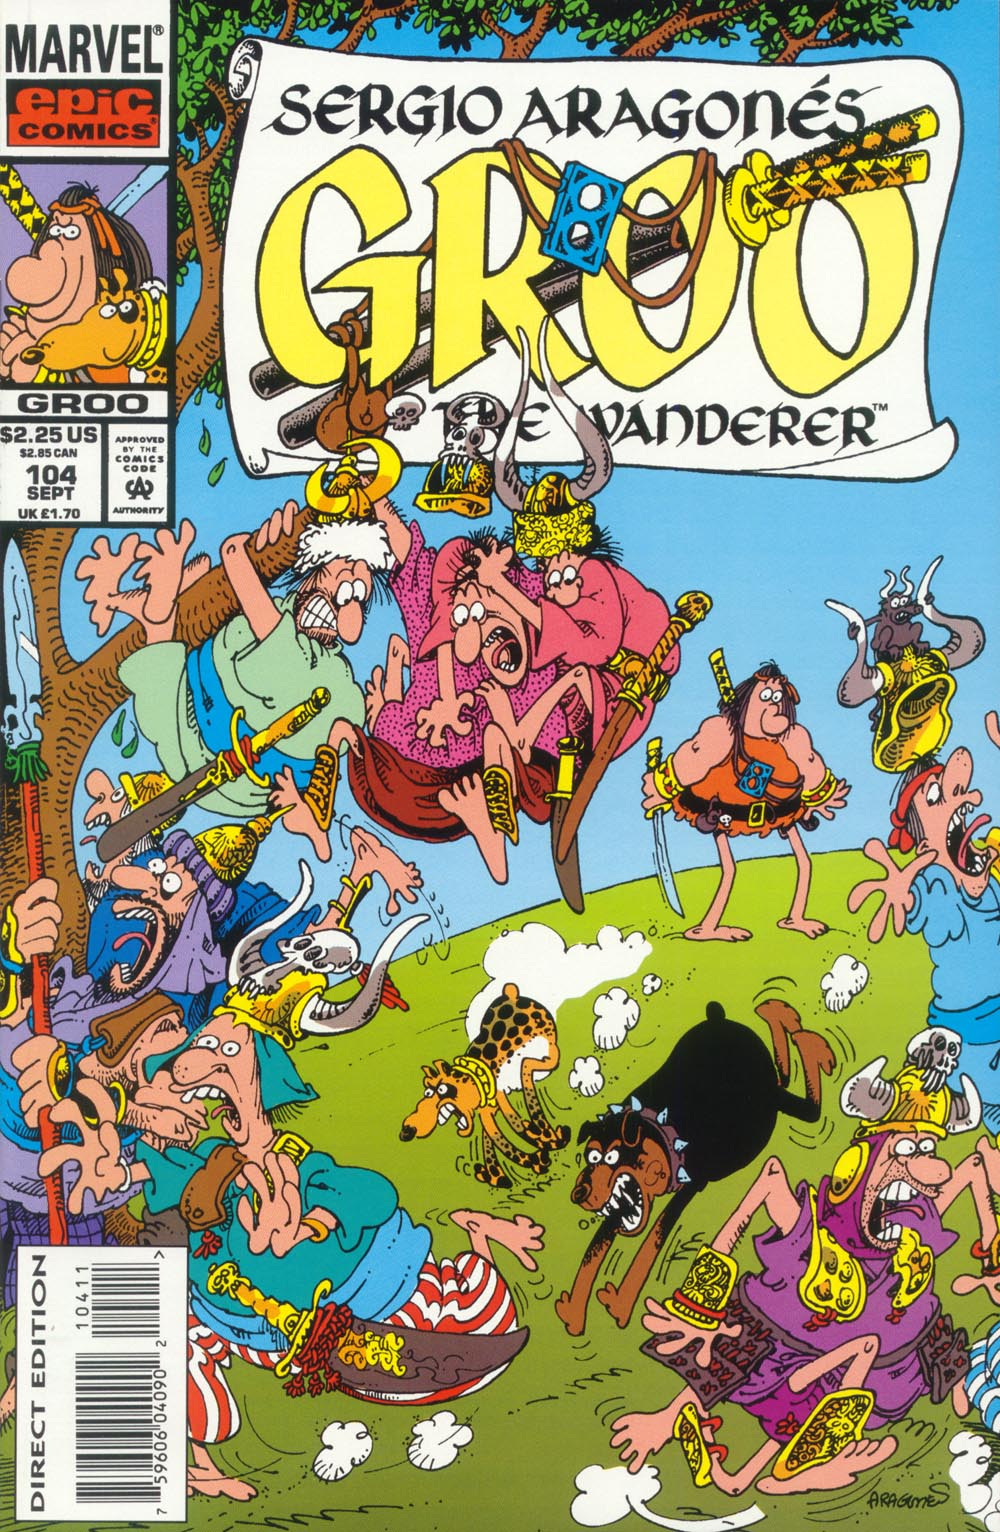 Read online Sergio Aragonés Groo the Wanderer comic -  Issue #104 - 1